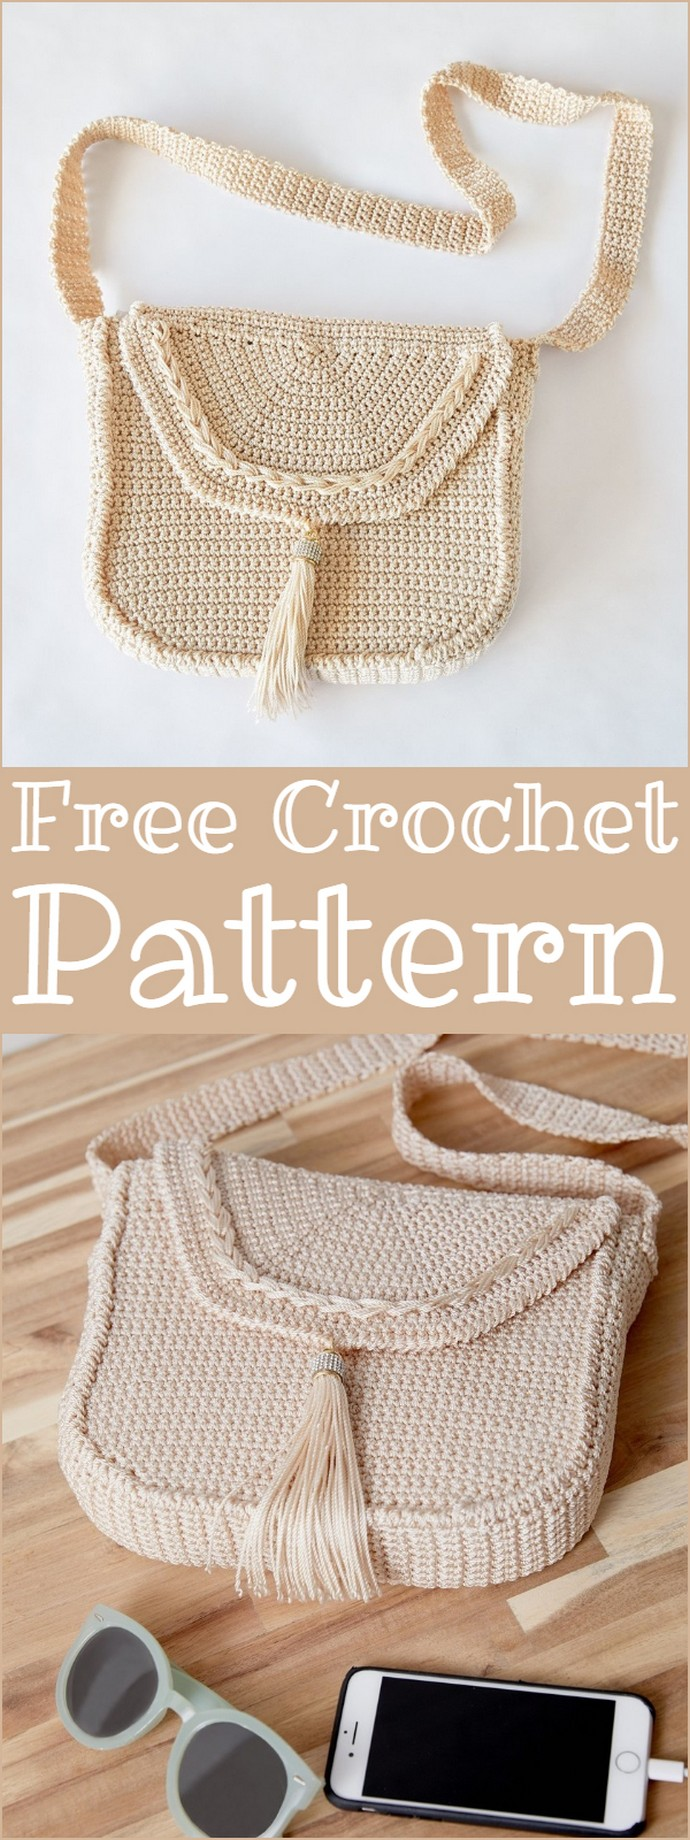 Crochet Cross Body Bag